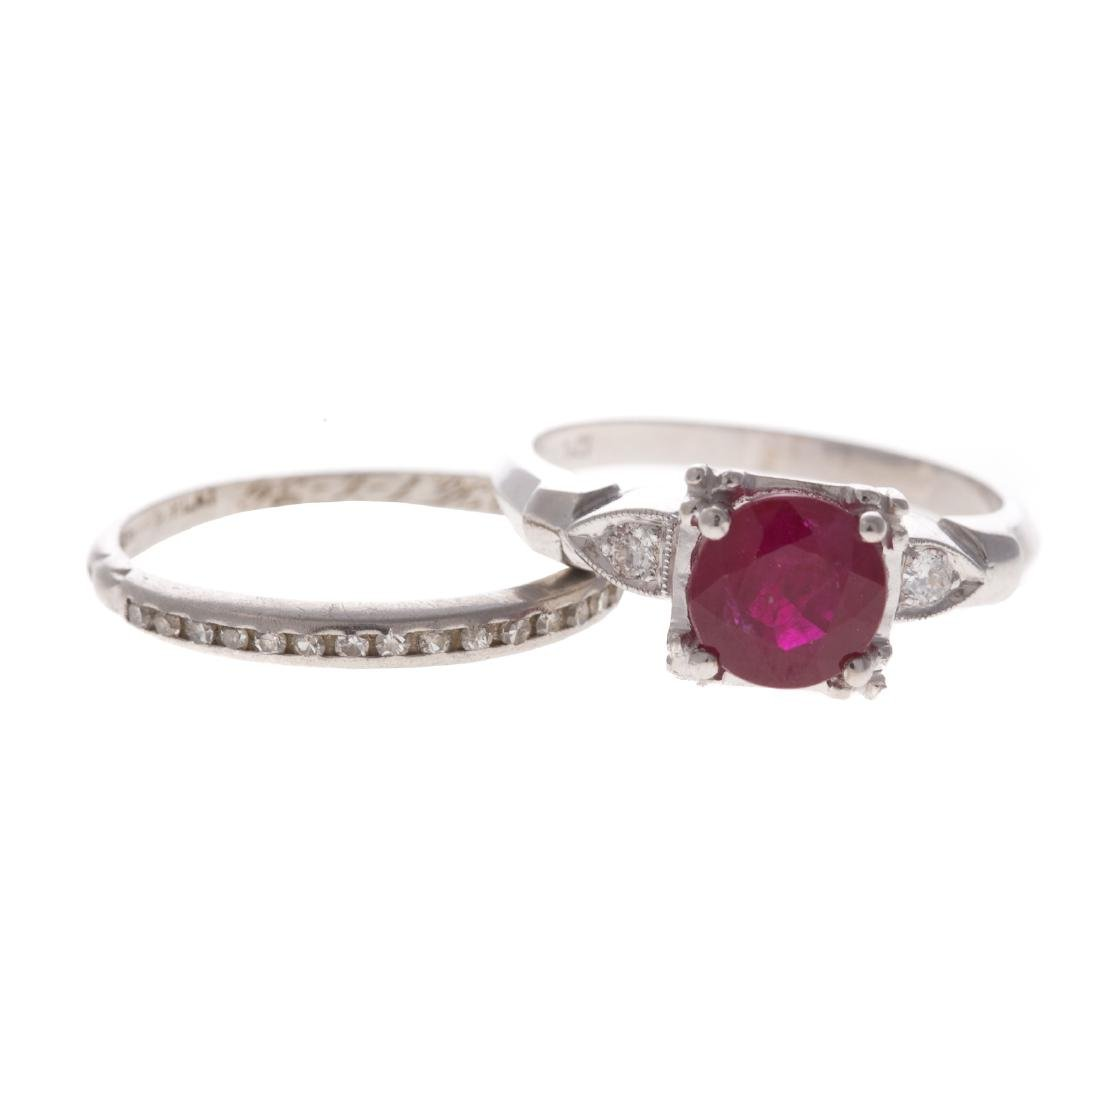 A Lady's Ruby & Diamond Ring with Plat Band